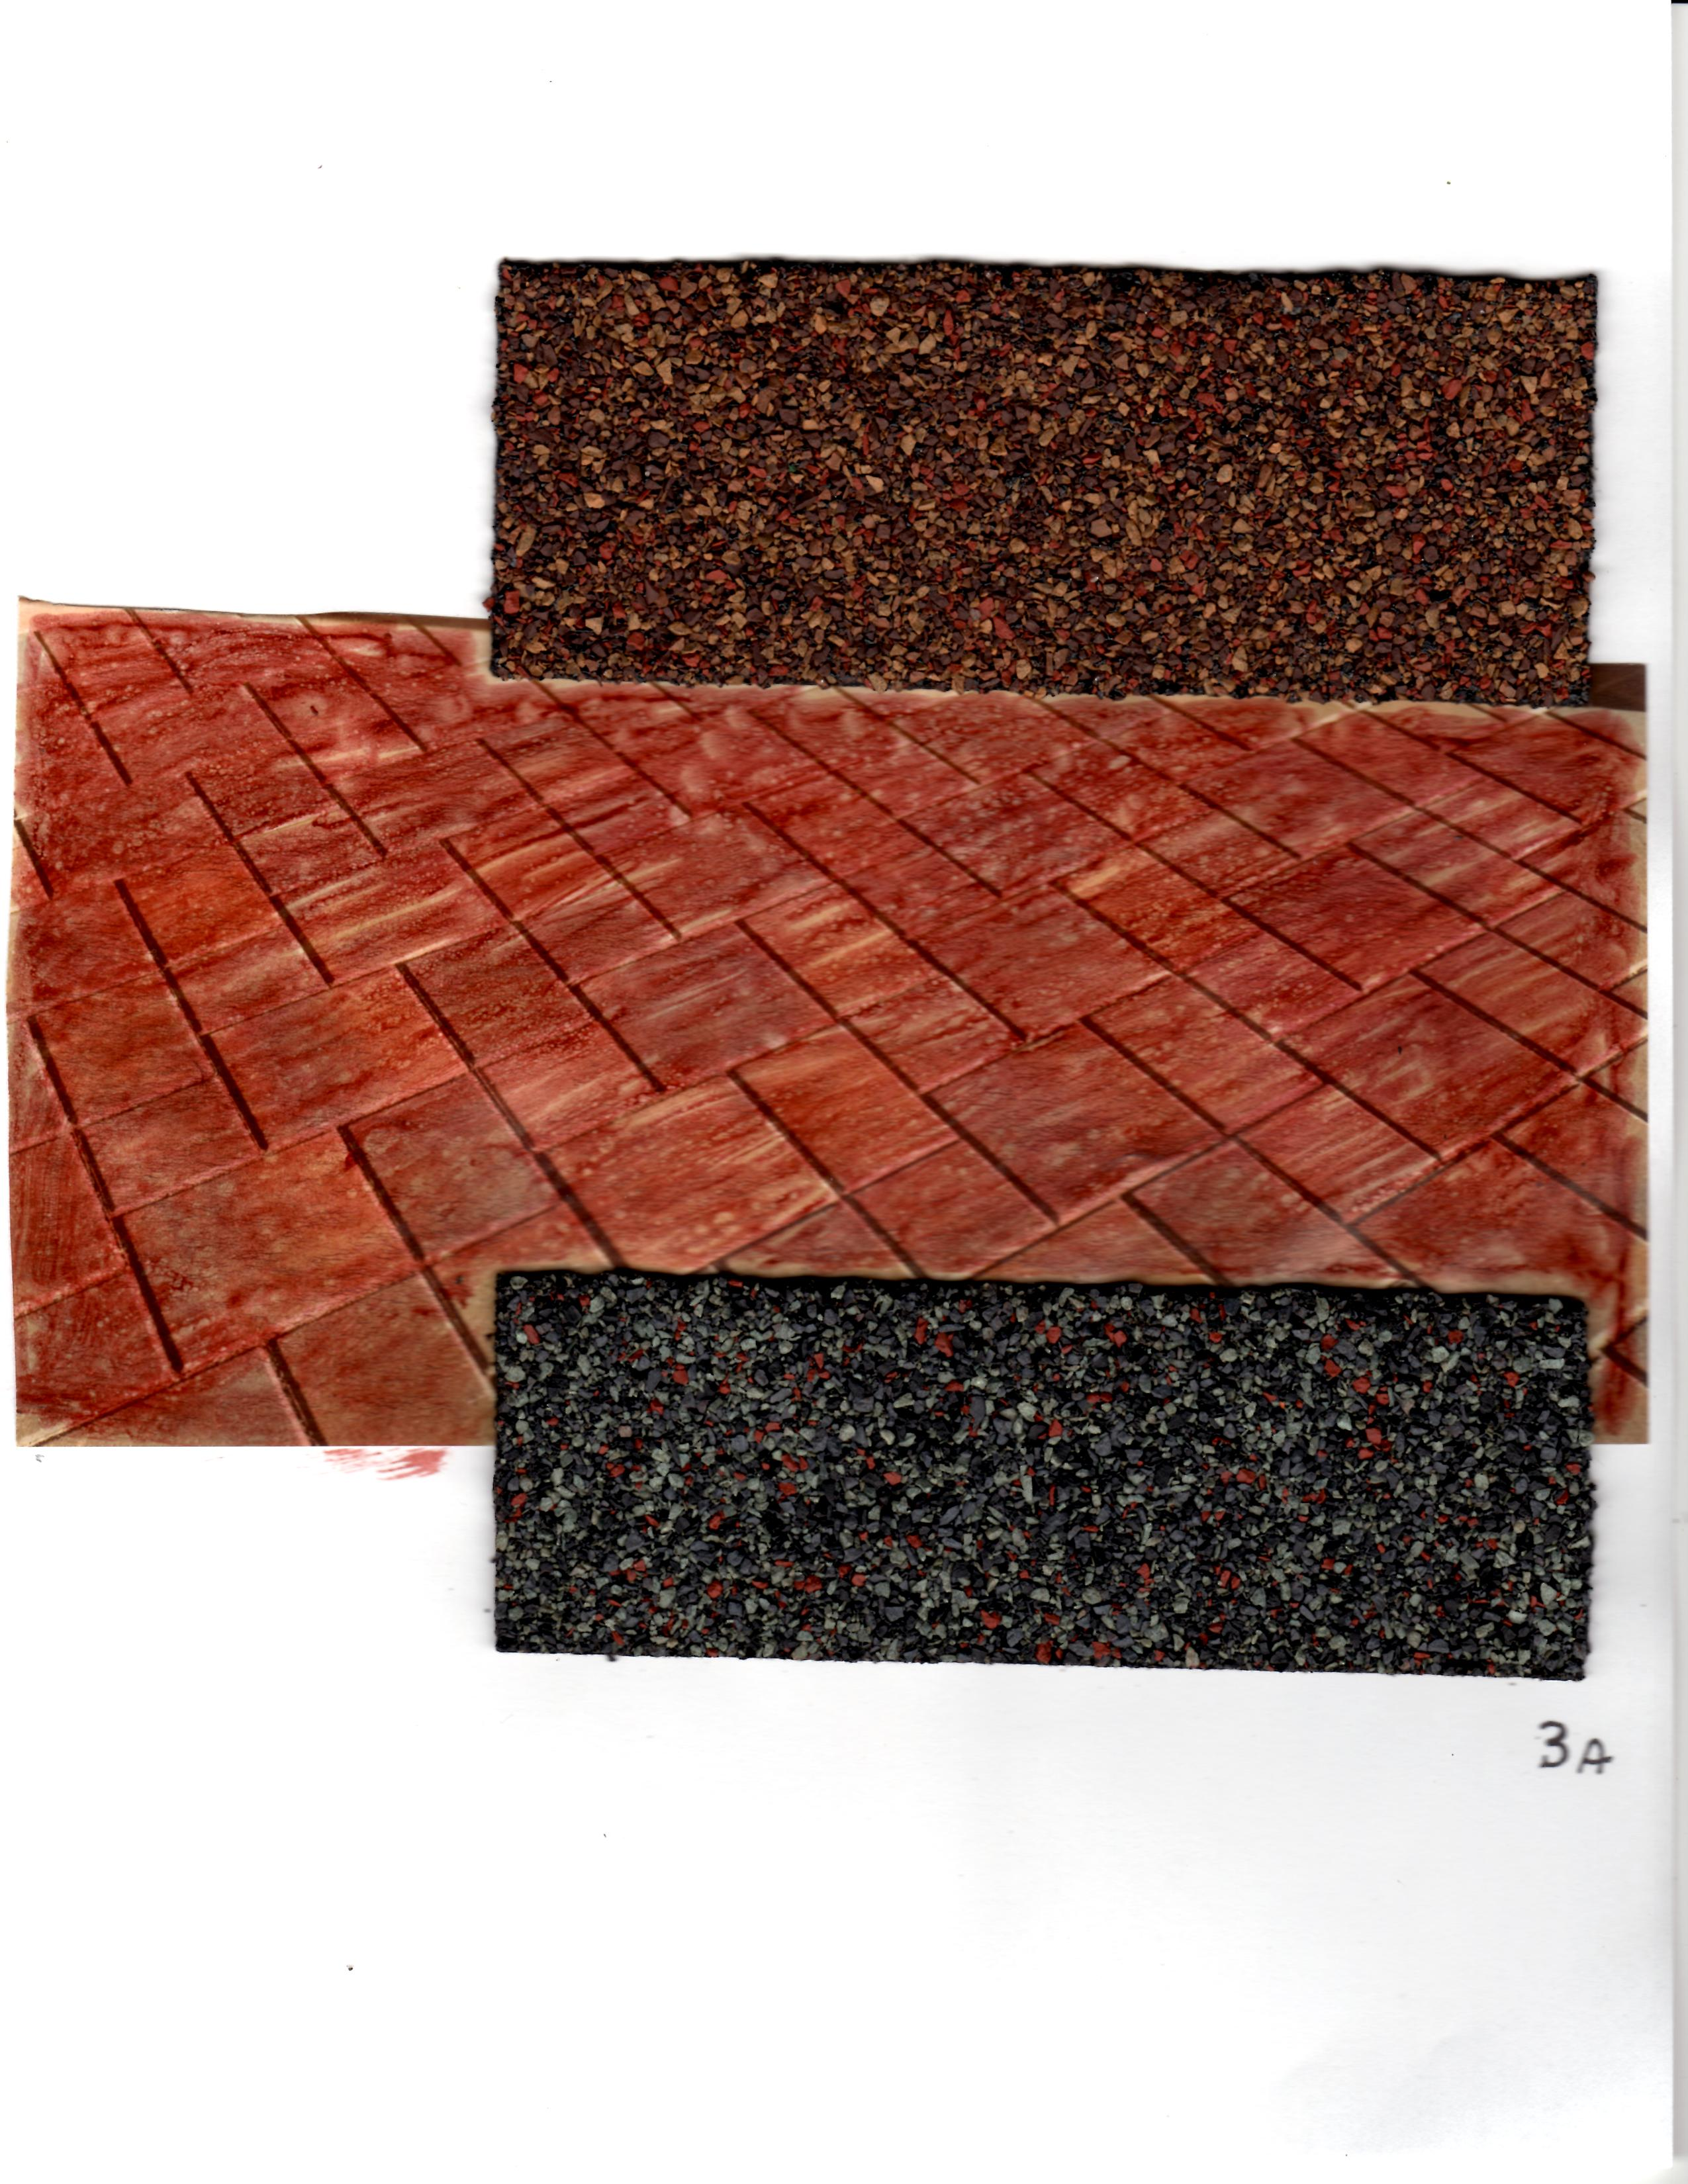 Choosing the Right Color Roof for your Home Fred Gonsowski Garden Home